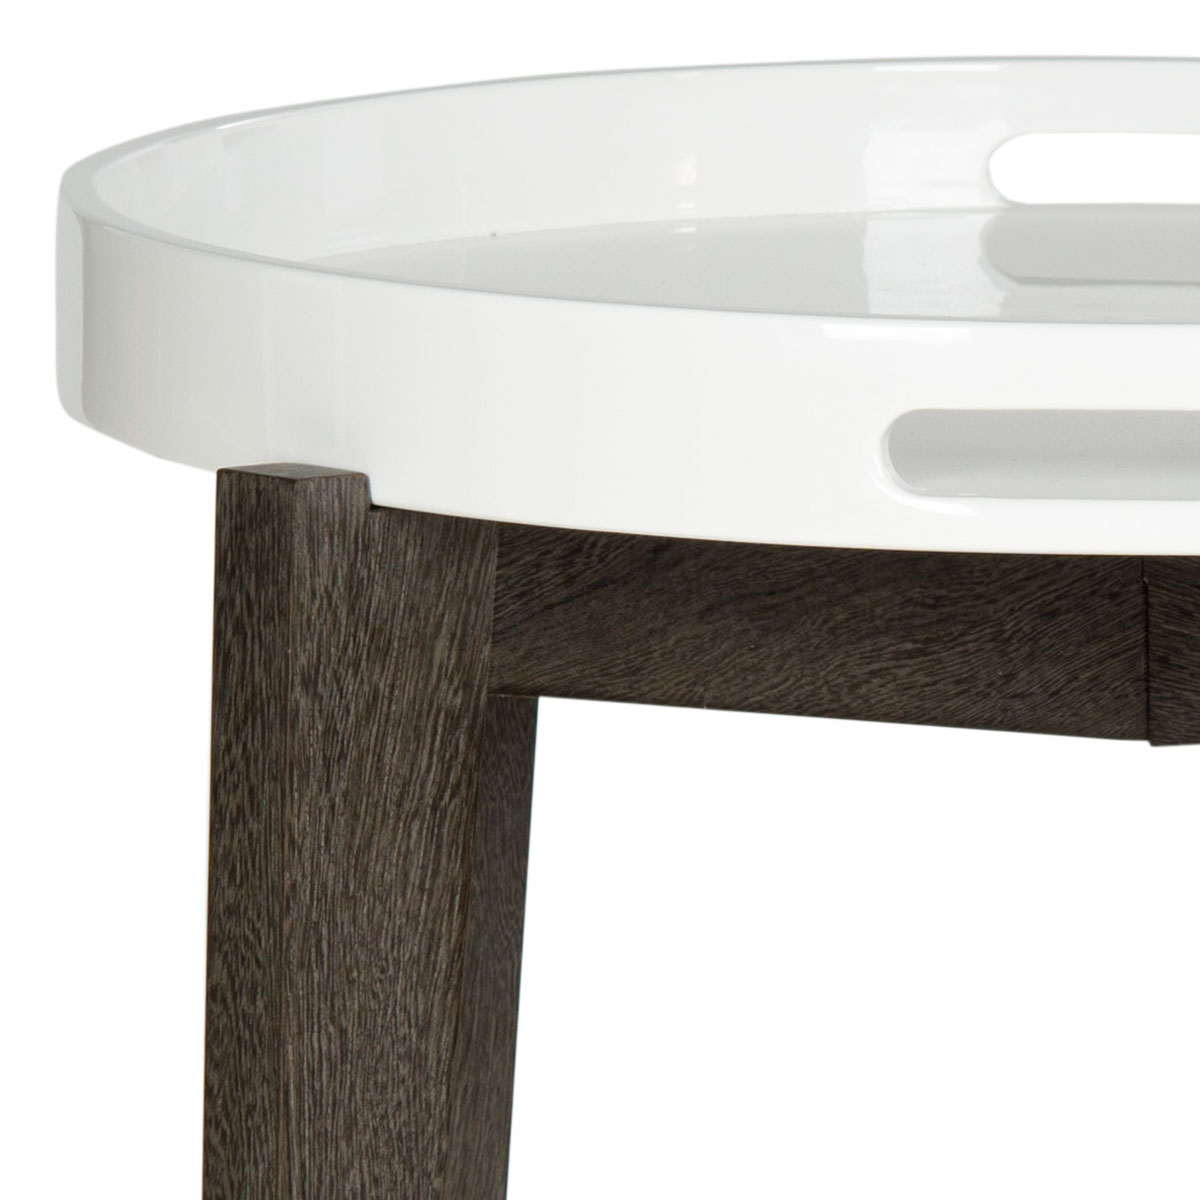 A Silent Butler For Your Home, The Ben Tray Table Is As Good Looking As It  Is Hard Working. A Removable White Lacquer Wood Tray Sits Atop A Dark Brown  Base ...